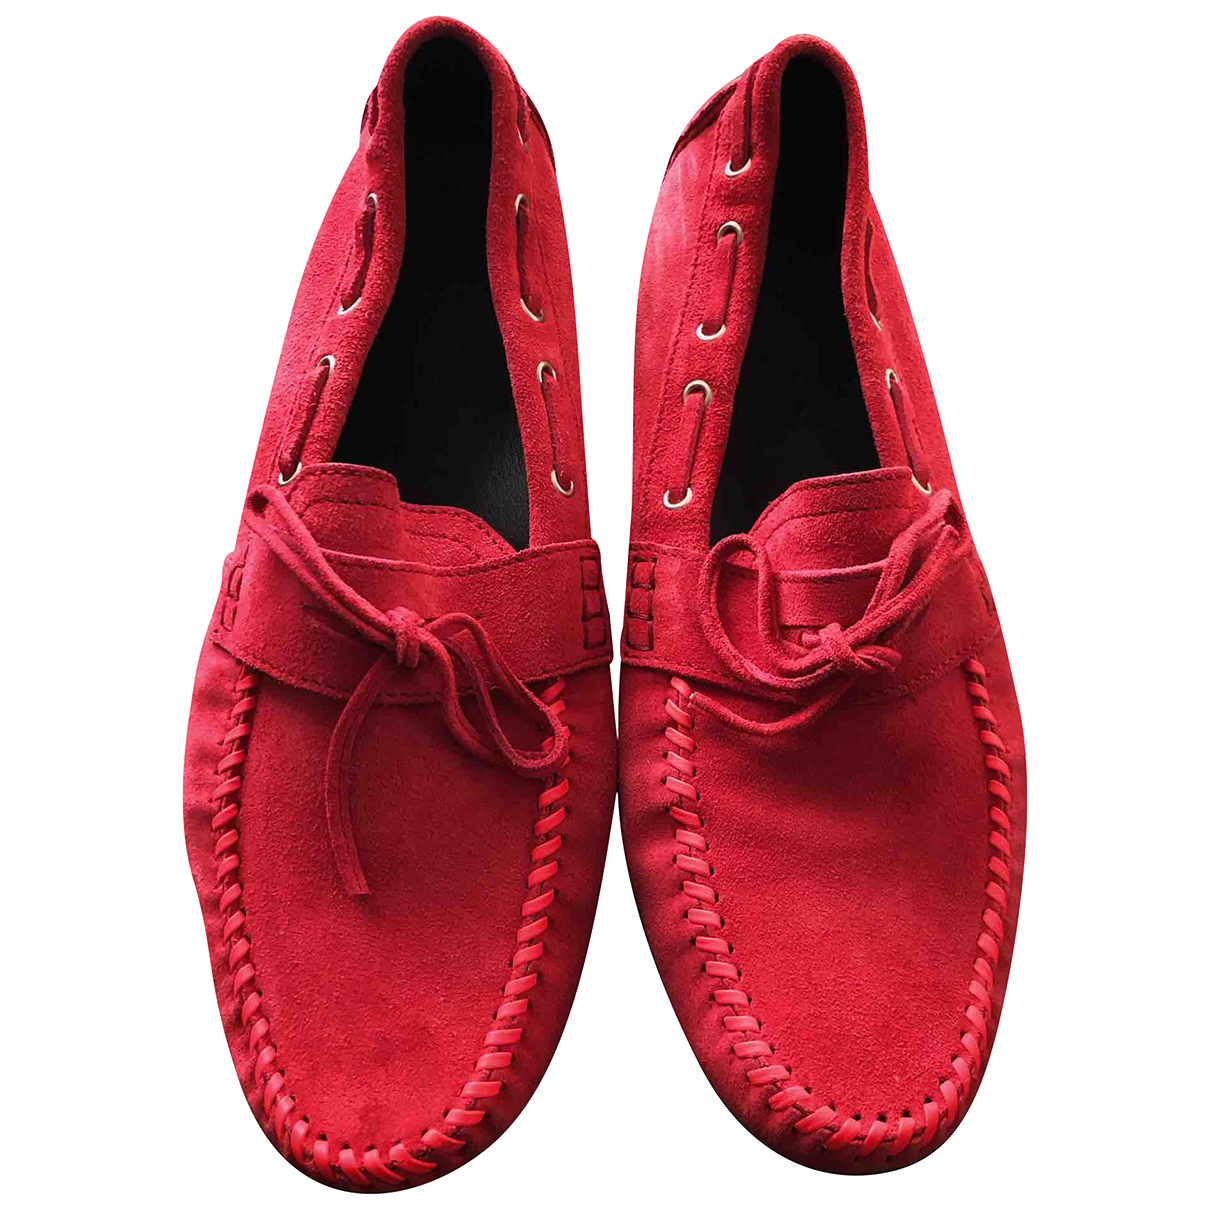 Jimmy Choo N Red Suede Flats for Men 44 EU